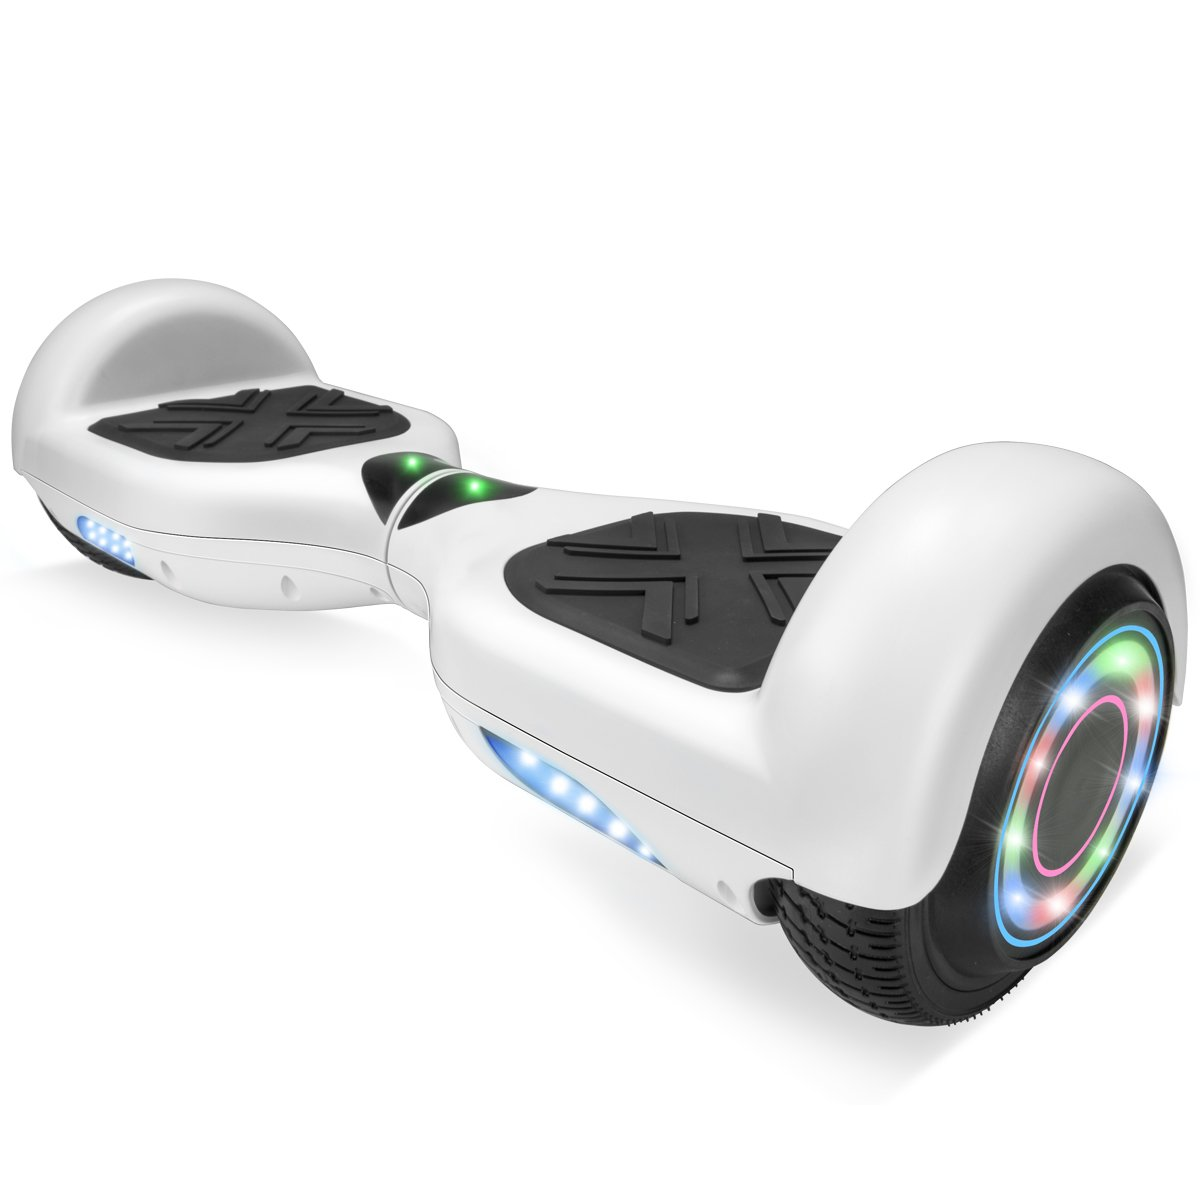 XtremepowerUS 6.5'' Self Balancing Hoverboard Scooter w/ Bluetooth Speaker (Matte White)